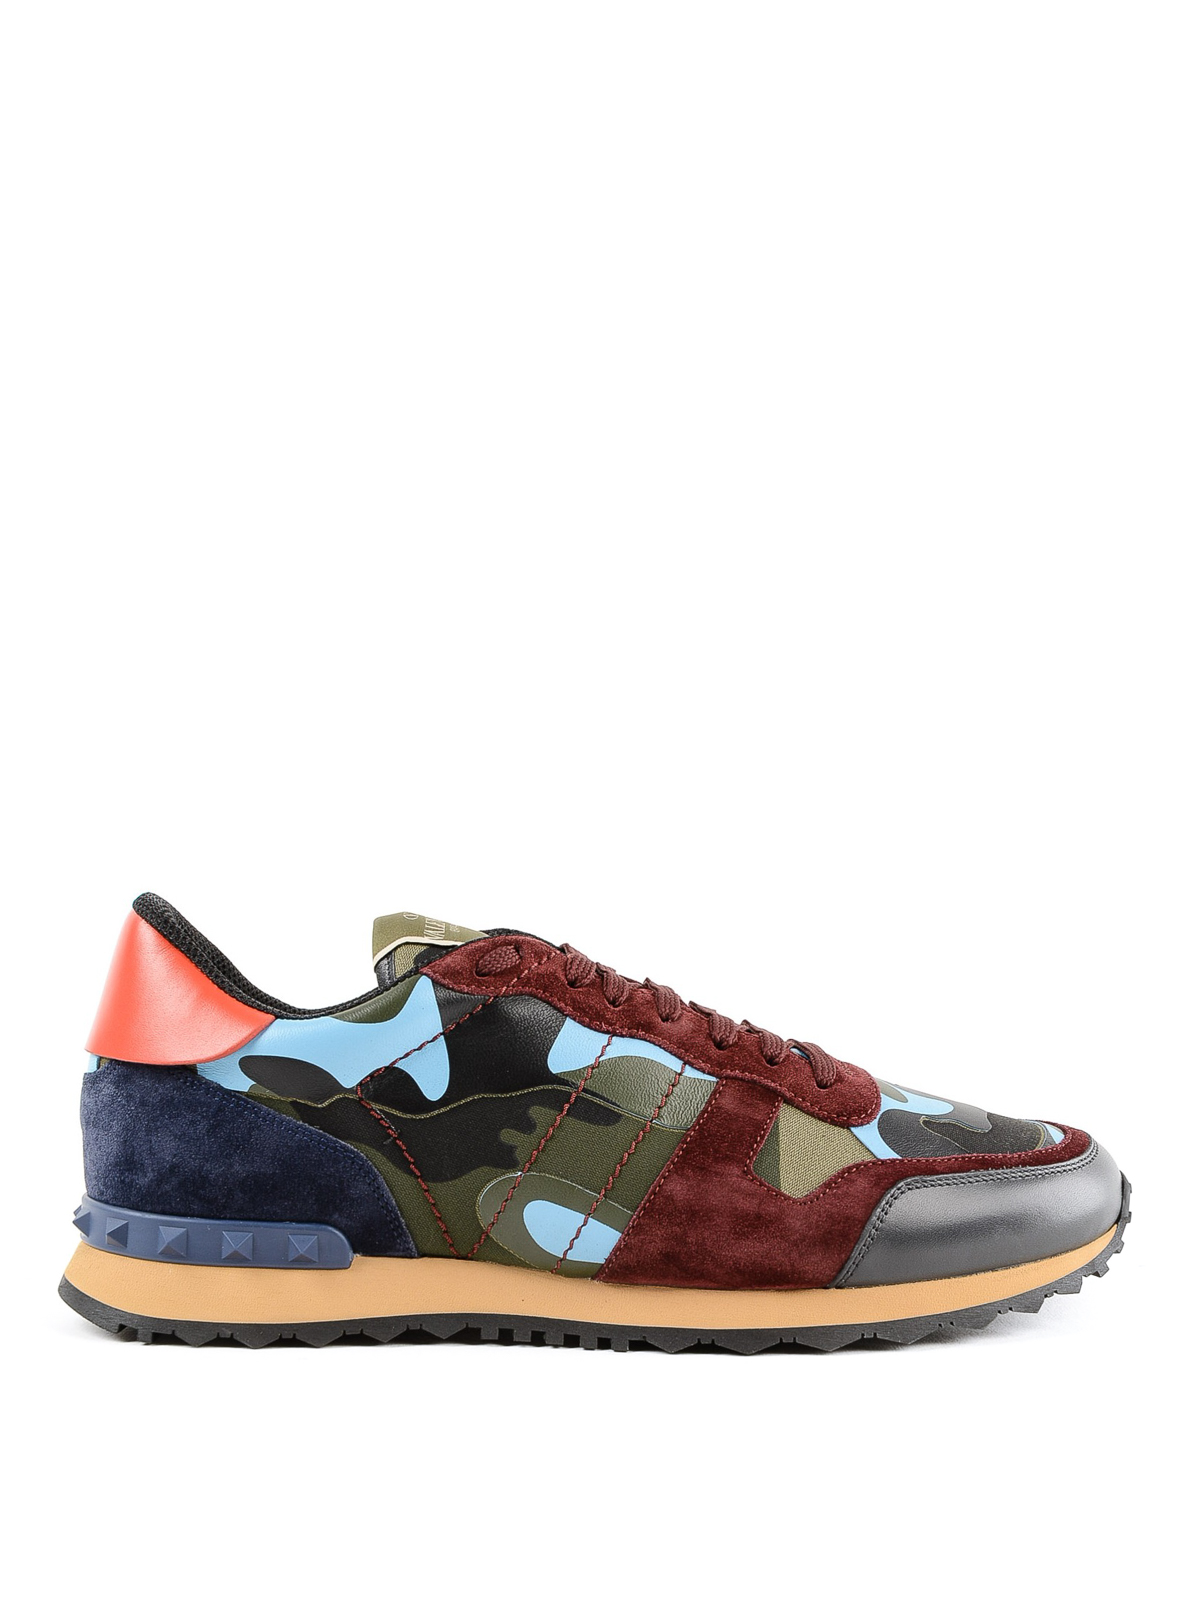 bd078bdfb6403 VALENTINO GARAVANI: trainers - Rockrunner Camouflage two-tone suede sneakers